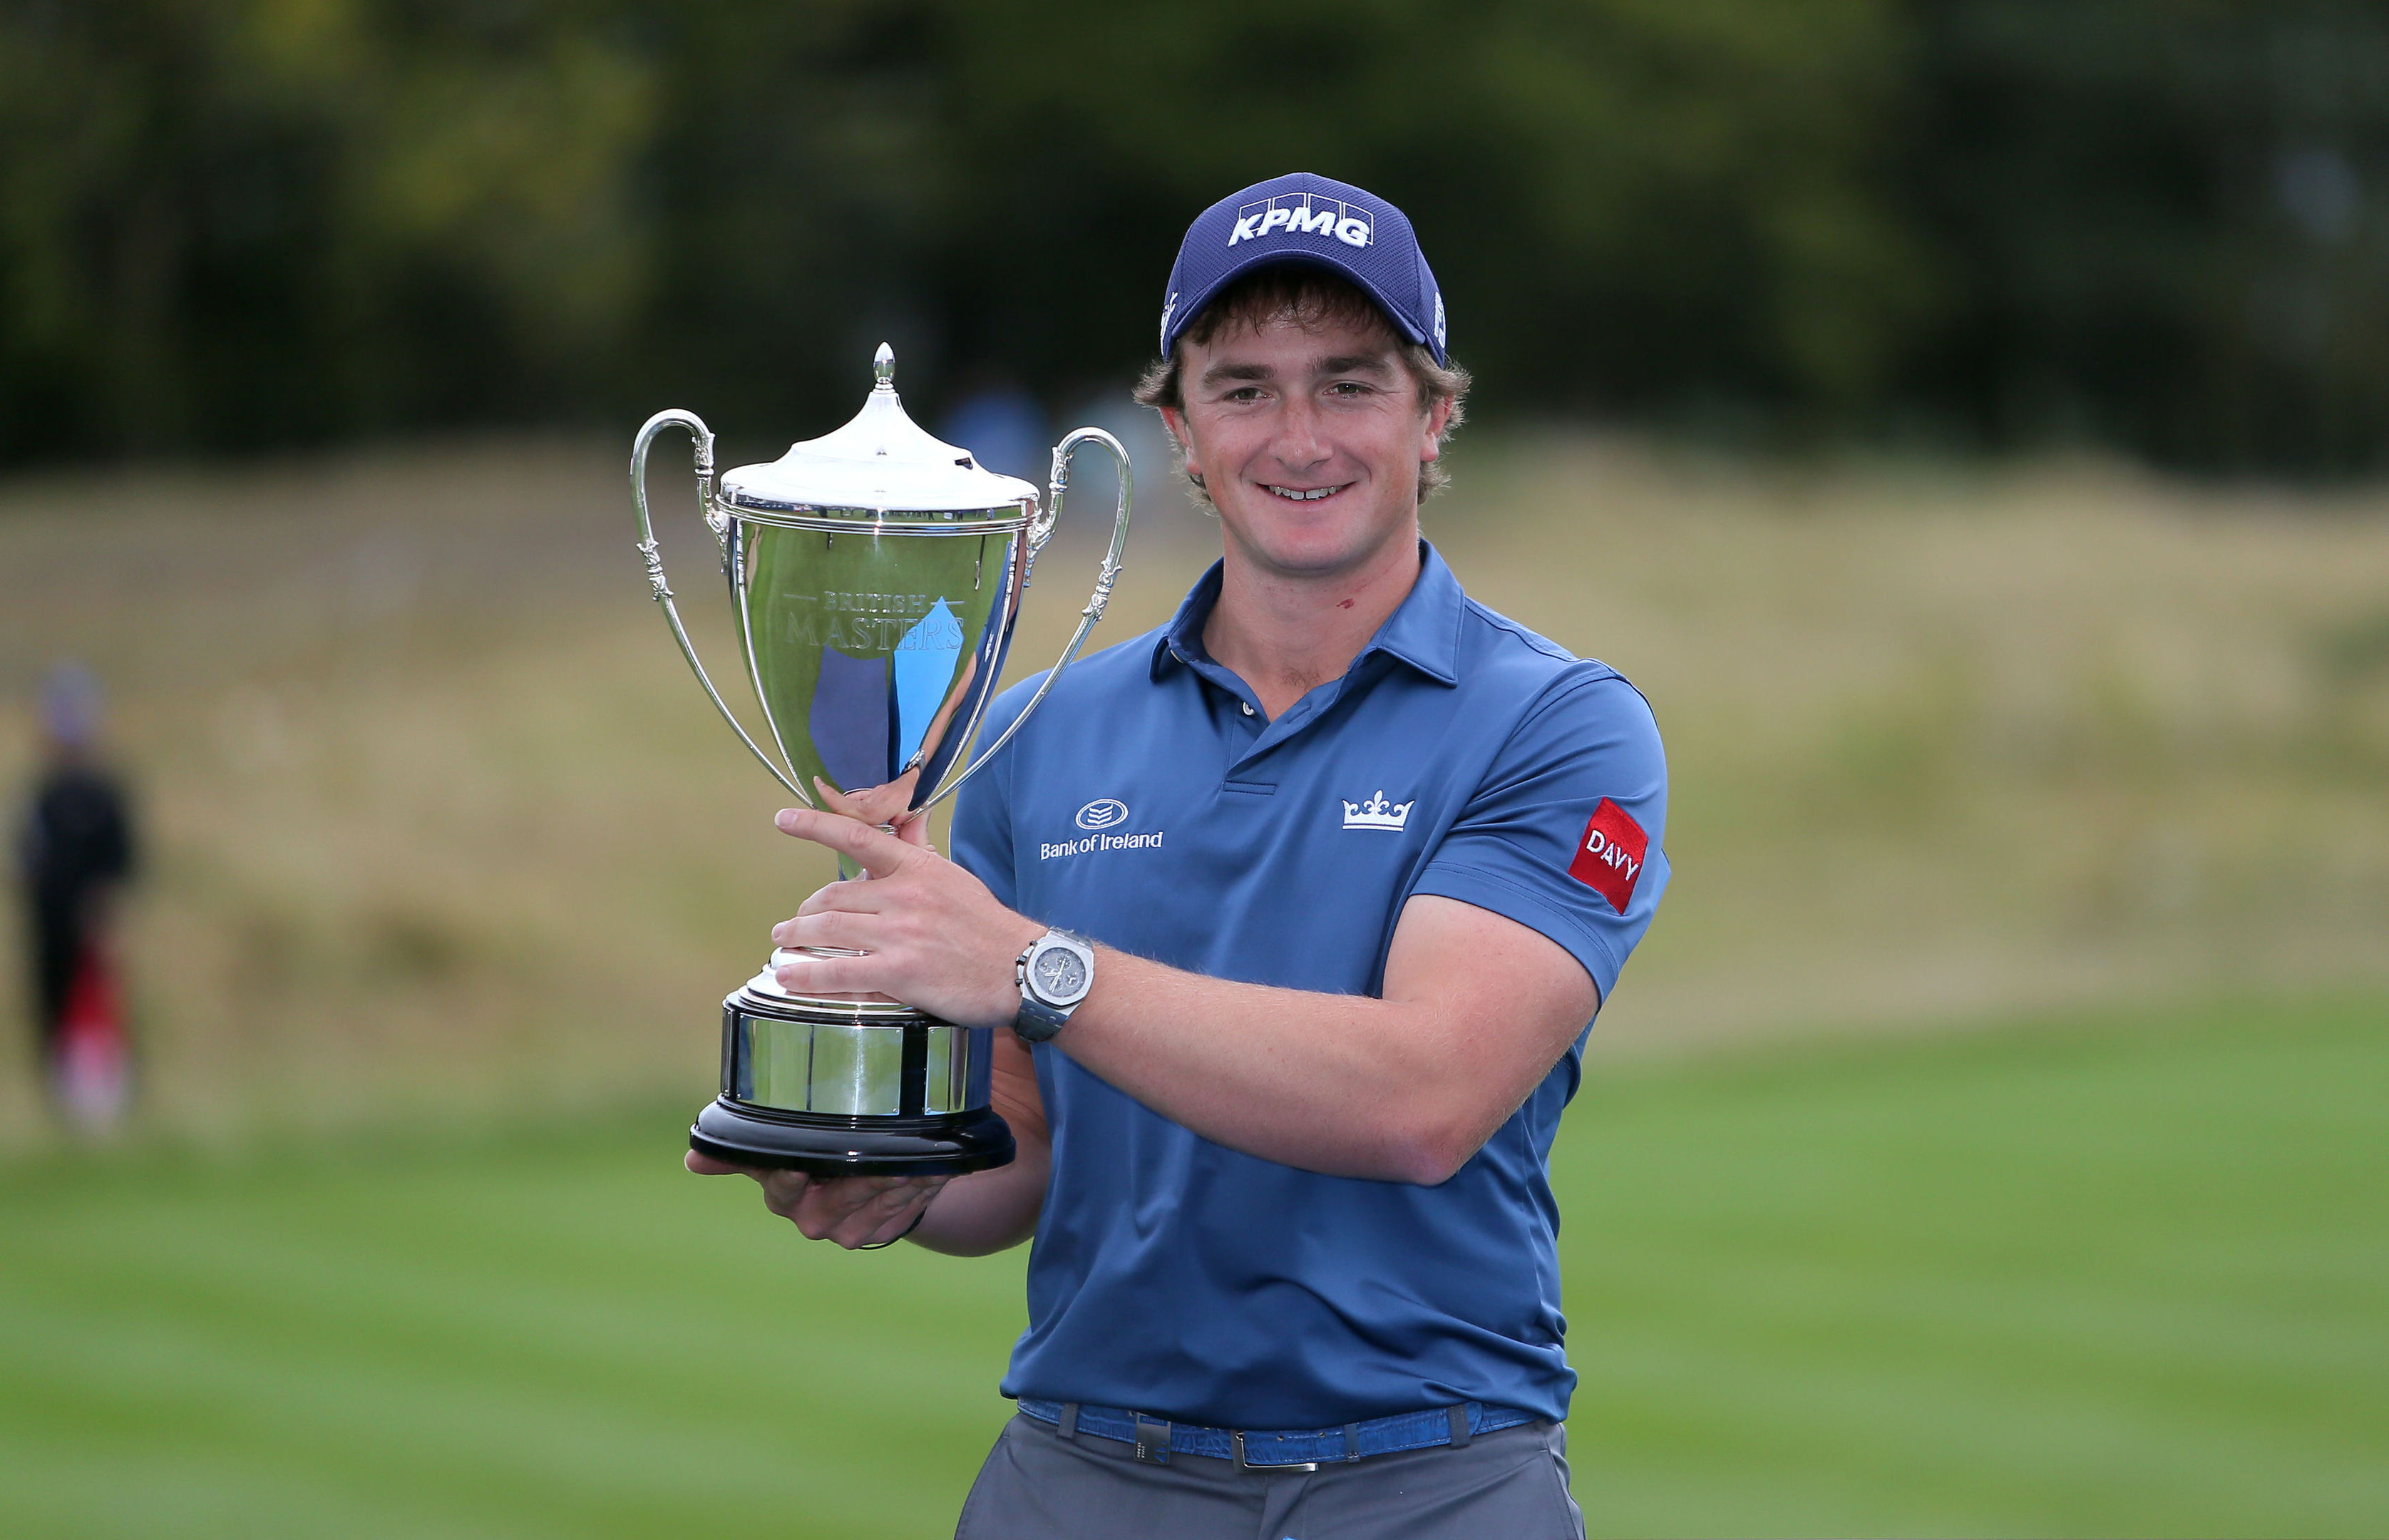 Ireland's Paul Dunne celebrates with the trophy after winning the British Masters at Close House Golf Club, Newcastle.